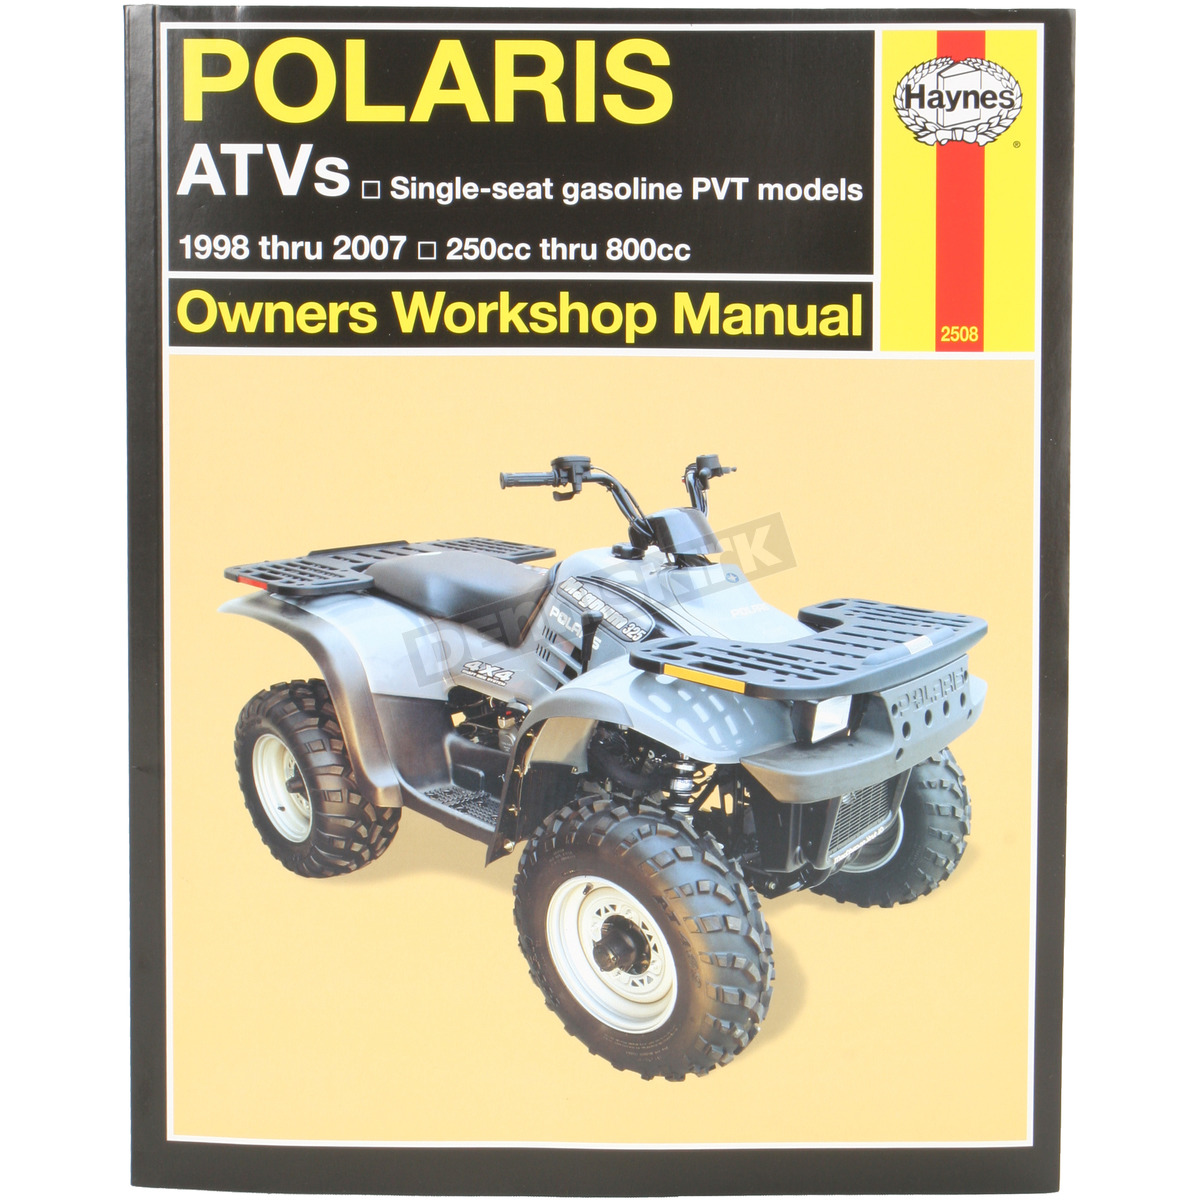 haynes polaris repair manual 2508 dennis kirk rh denniskirk com polaris sportsman 500 ho repair manual polaris sportsman 500 repair manual